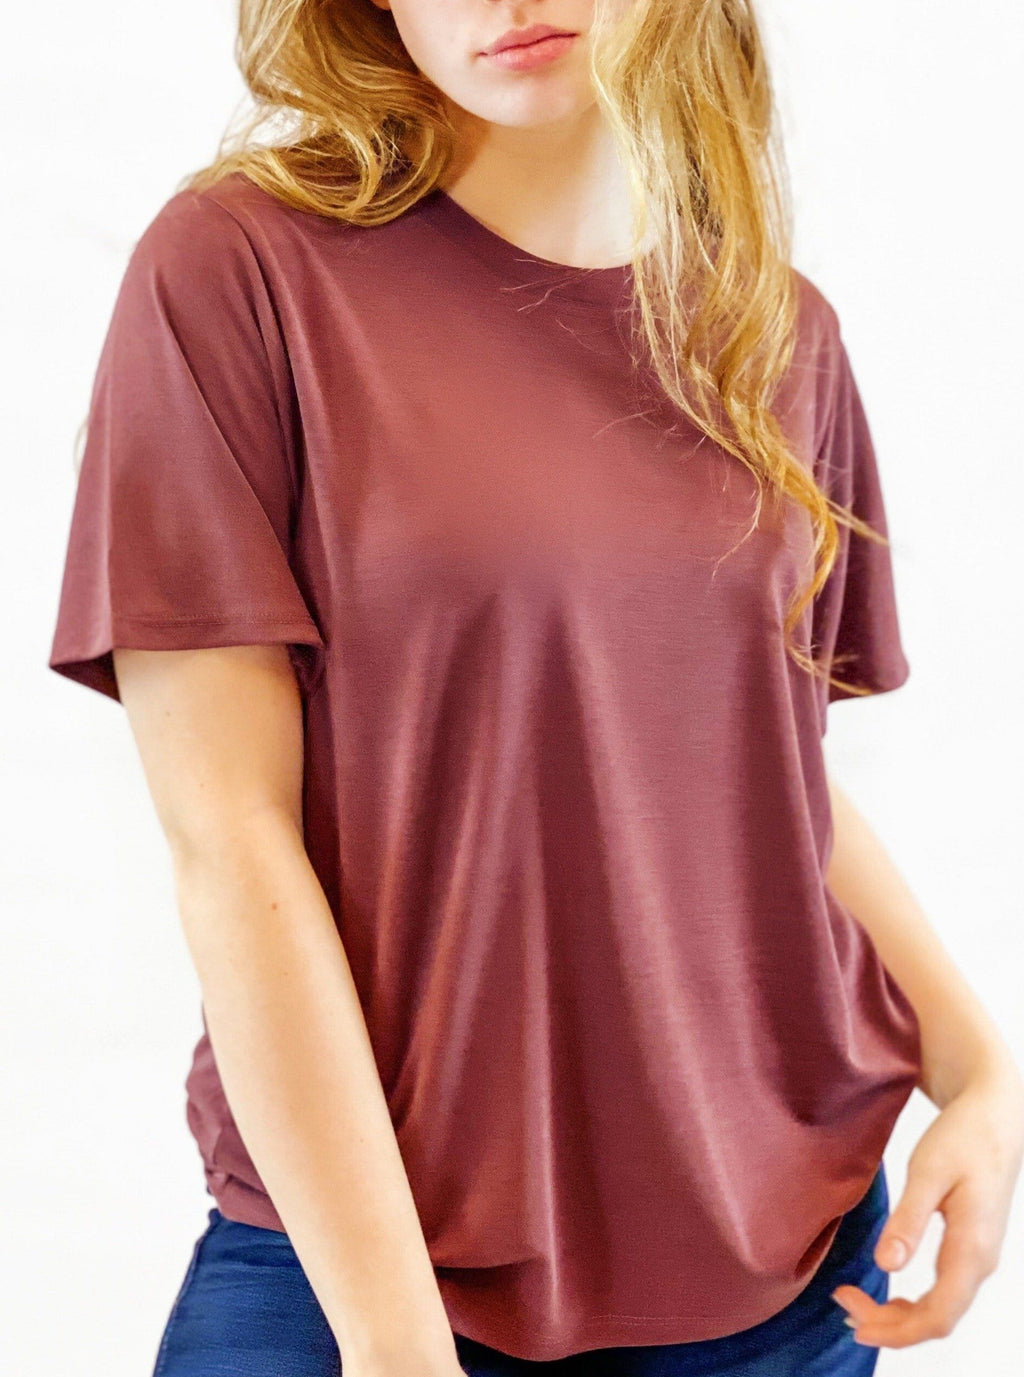 Relaxed Fit Tee - Dark Mauve - bigcityboutique